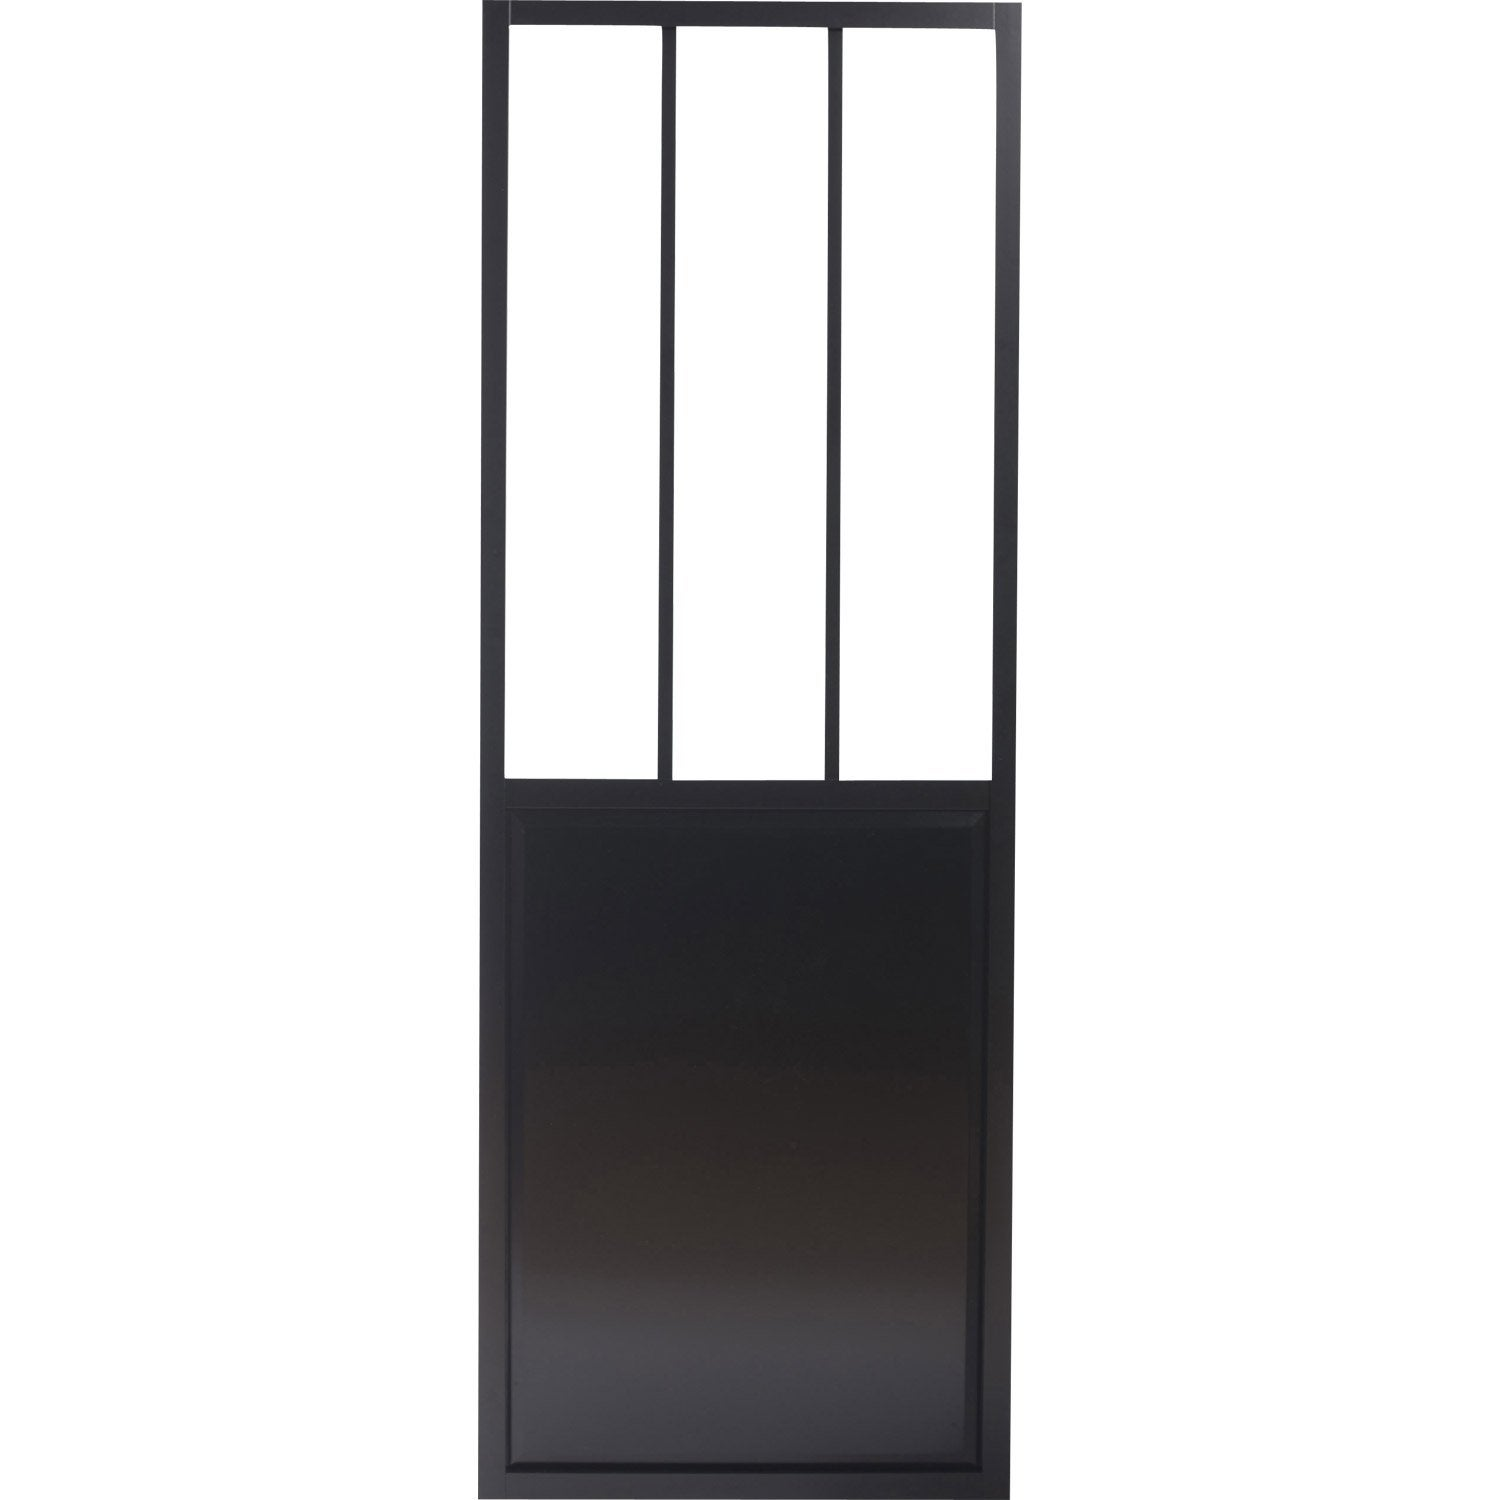 porte coulissante aluminium noir atelier verre givr artens x cm leroy merlin. Black Bedroom Furniture Sets. Home Design Ideas